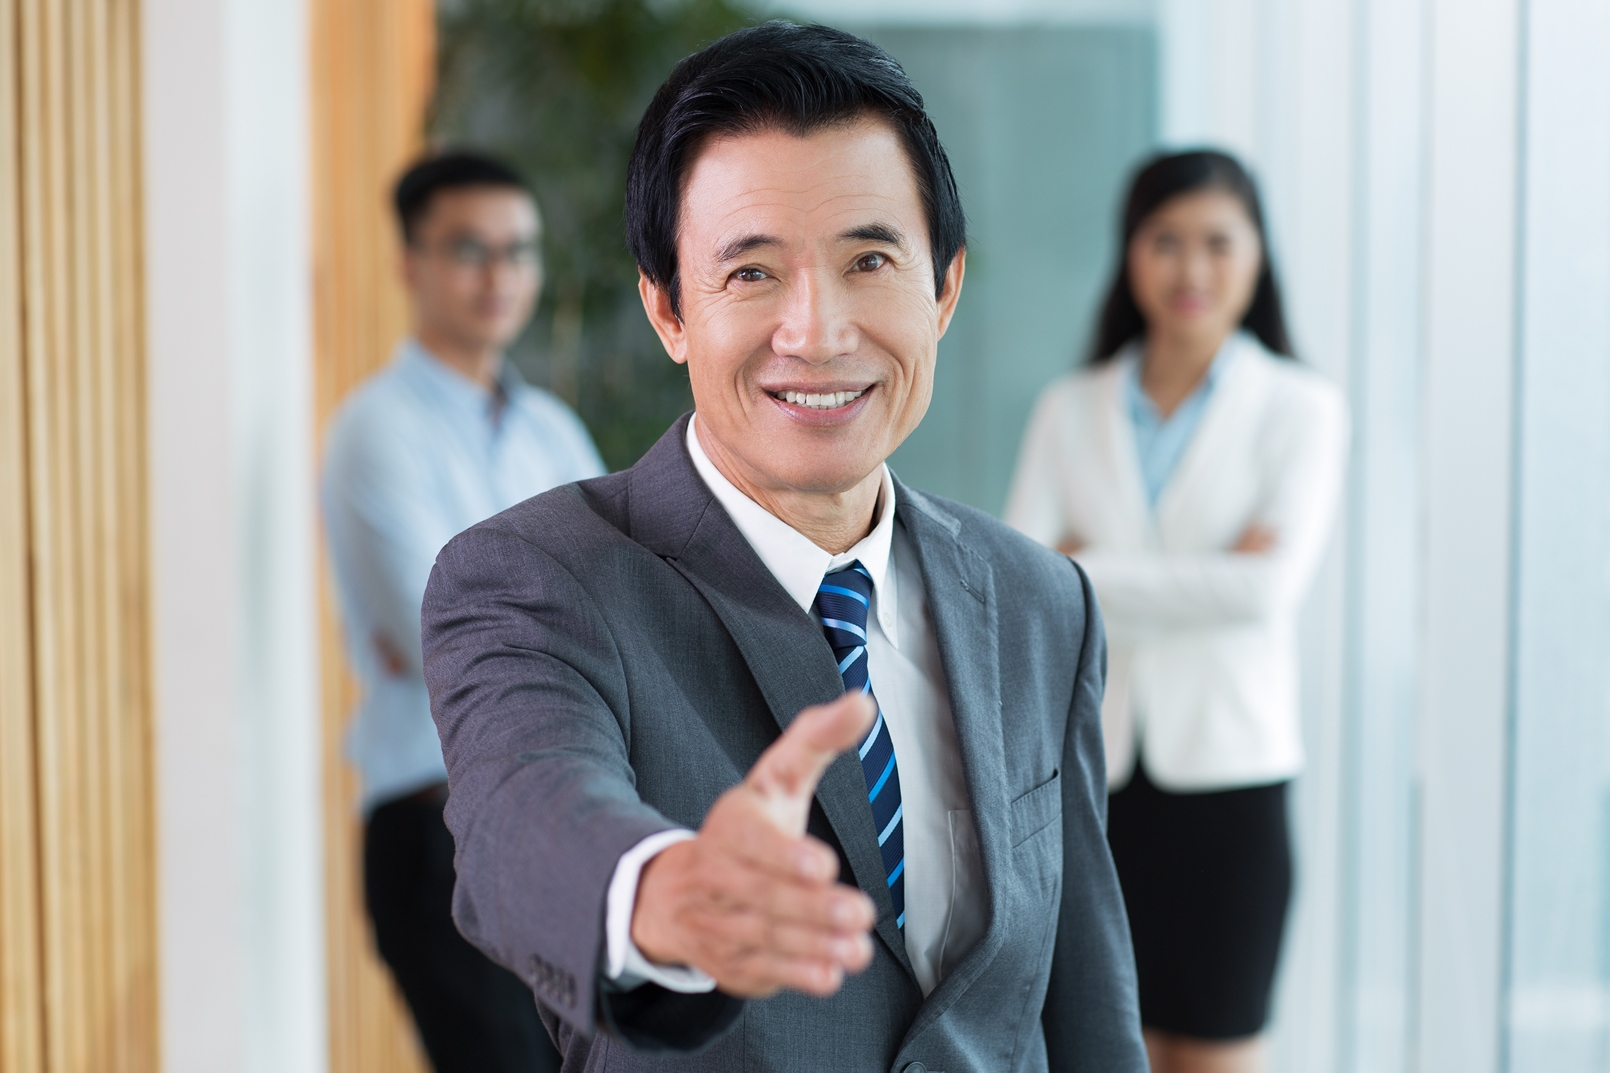 Smiling senior Asian businessman offering handshake